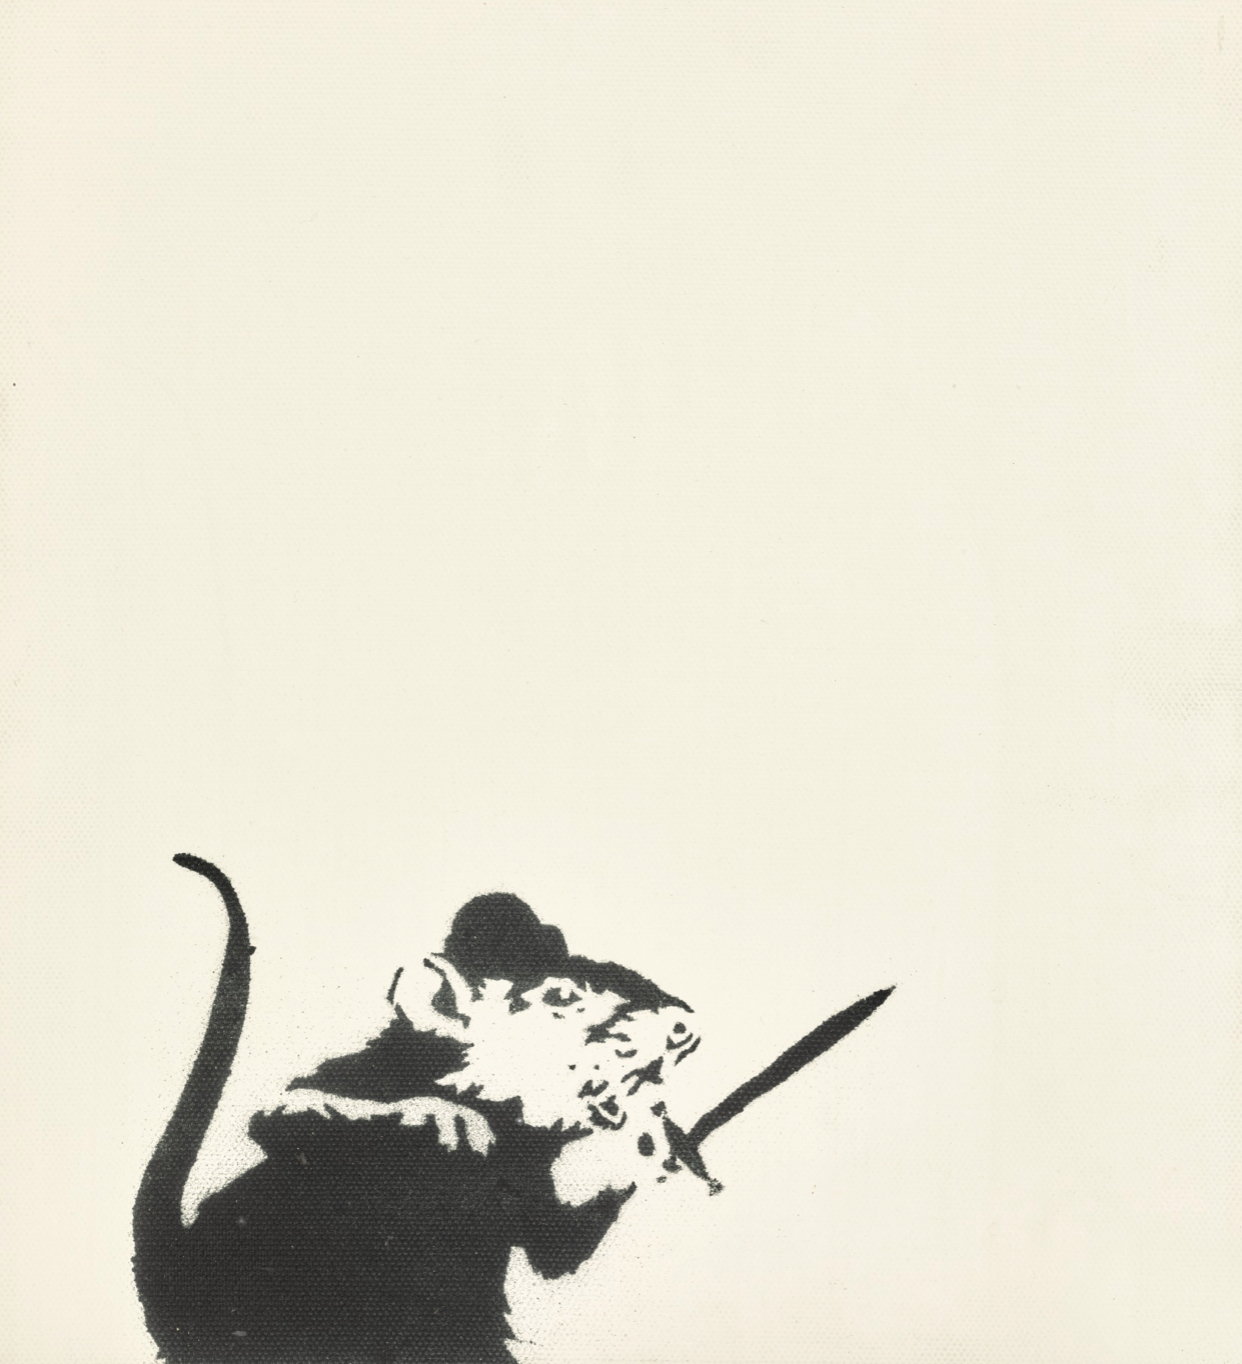 UNTITLED (rat and sword)